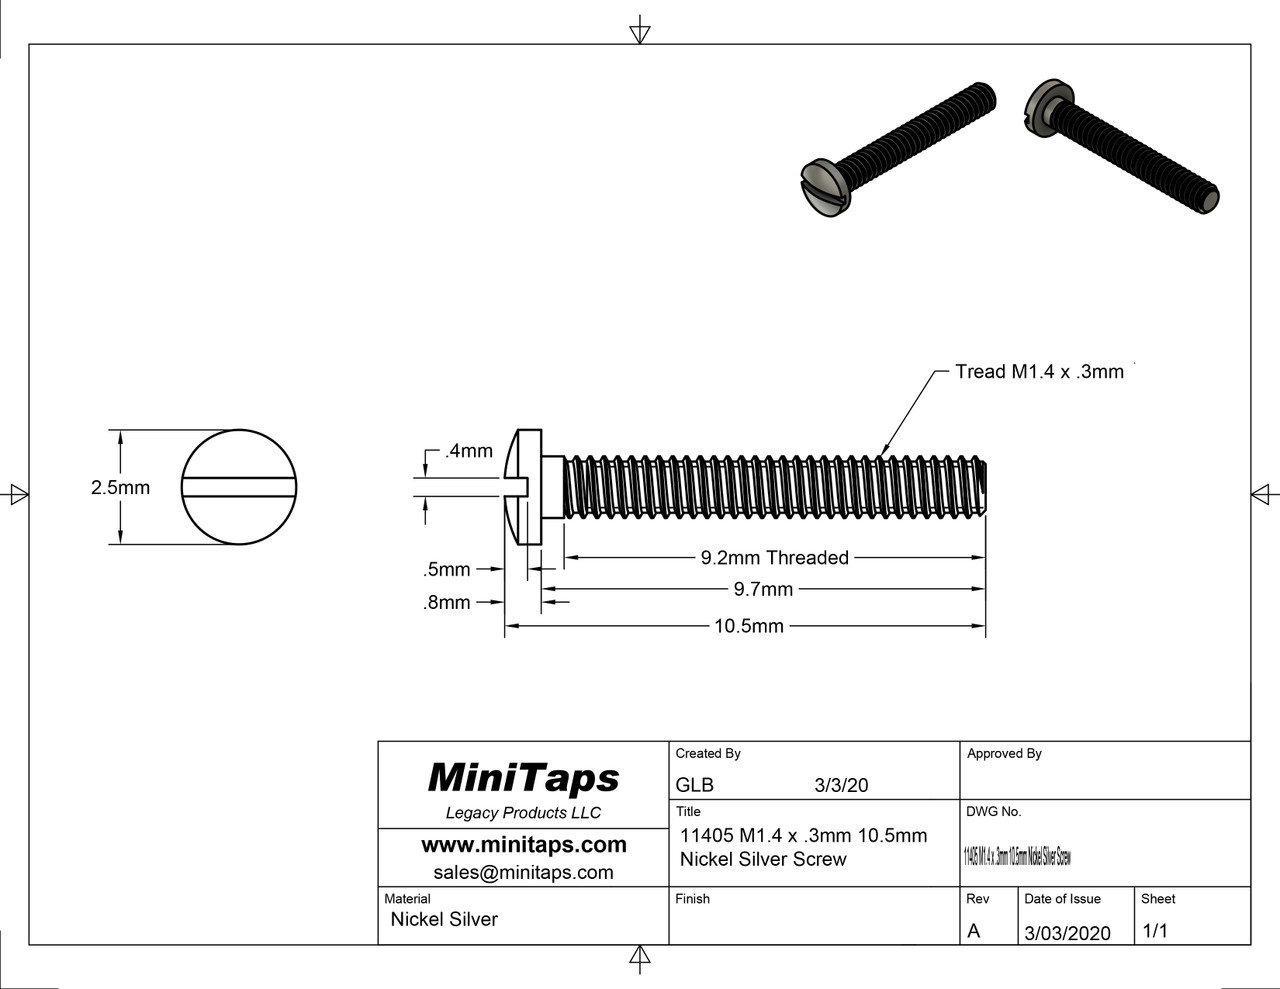 """Machine Screw, Pan Head, Special,   Thread M1.4 (1.40UNM), Pitch .30mm, Head diameter 2.5mm, Threaded Length 9.7mm (3/8""""), Overall Length 10.5mm,   Material Nickel Silver; a copper alloy superior to brass. Finish Color """"Gold""""   Price is for 100 count package with bulk pricing available.   Please contact sales@minitaps.com for bulk pricing pricing or any additional questions or information."""